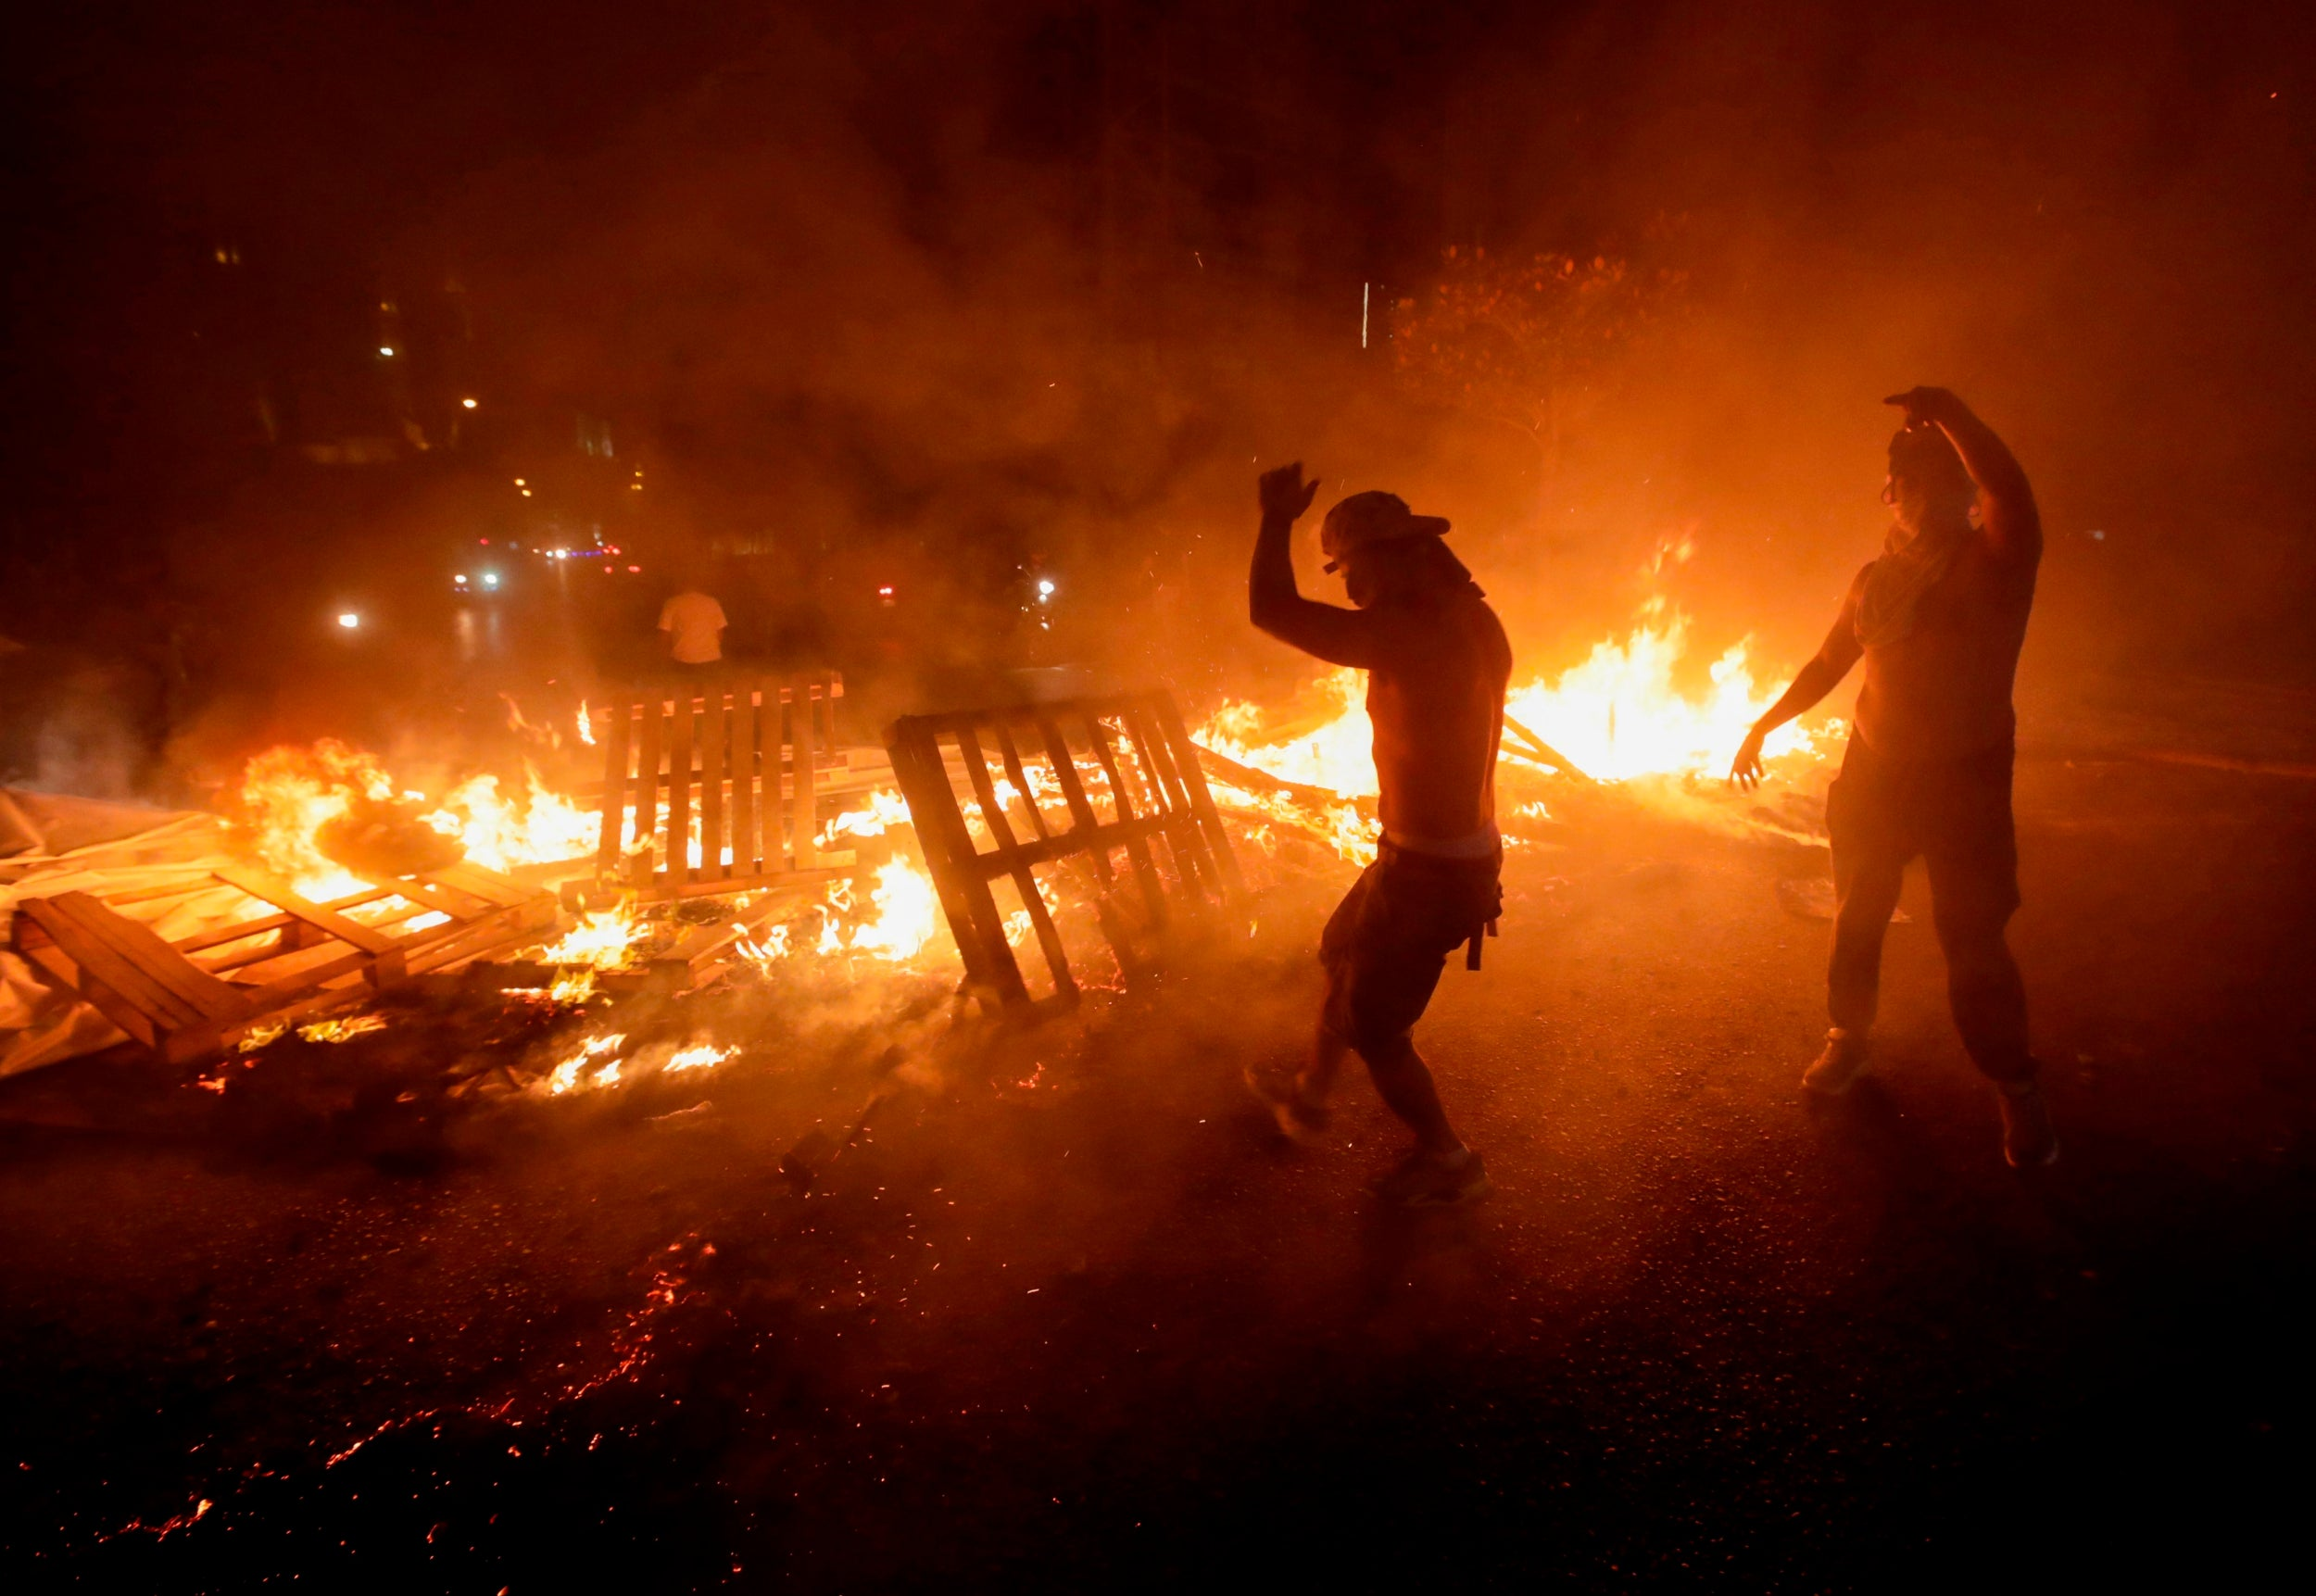 I don't blame the Lebanese rioters setting Beirut alight – they are hungry, poor and furious